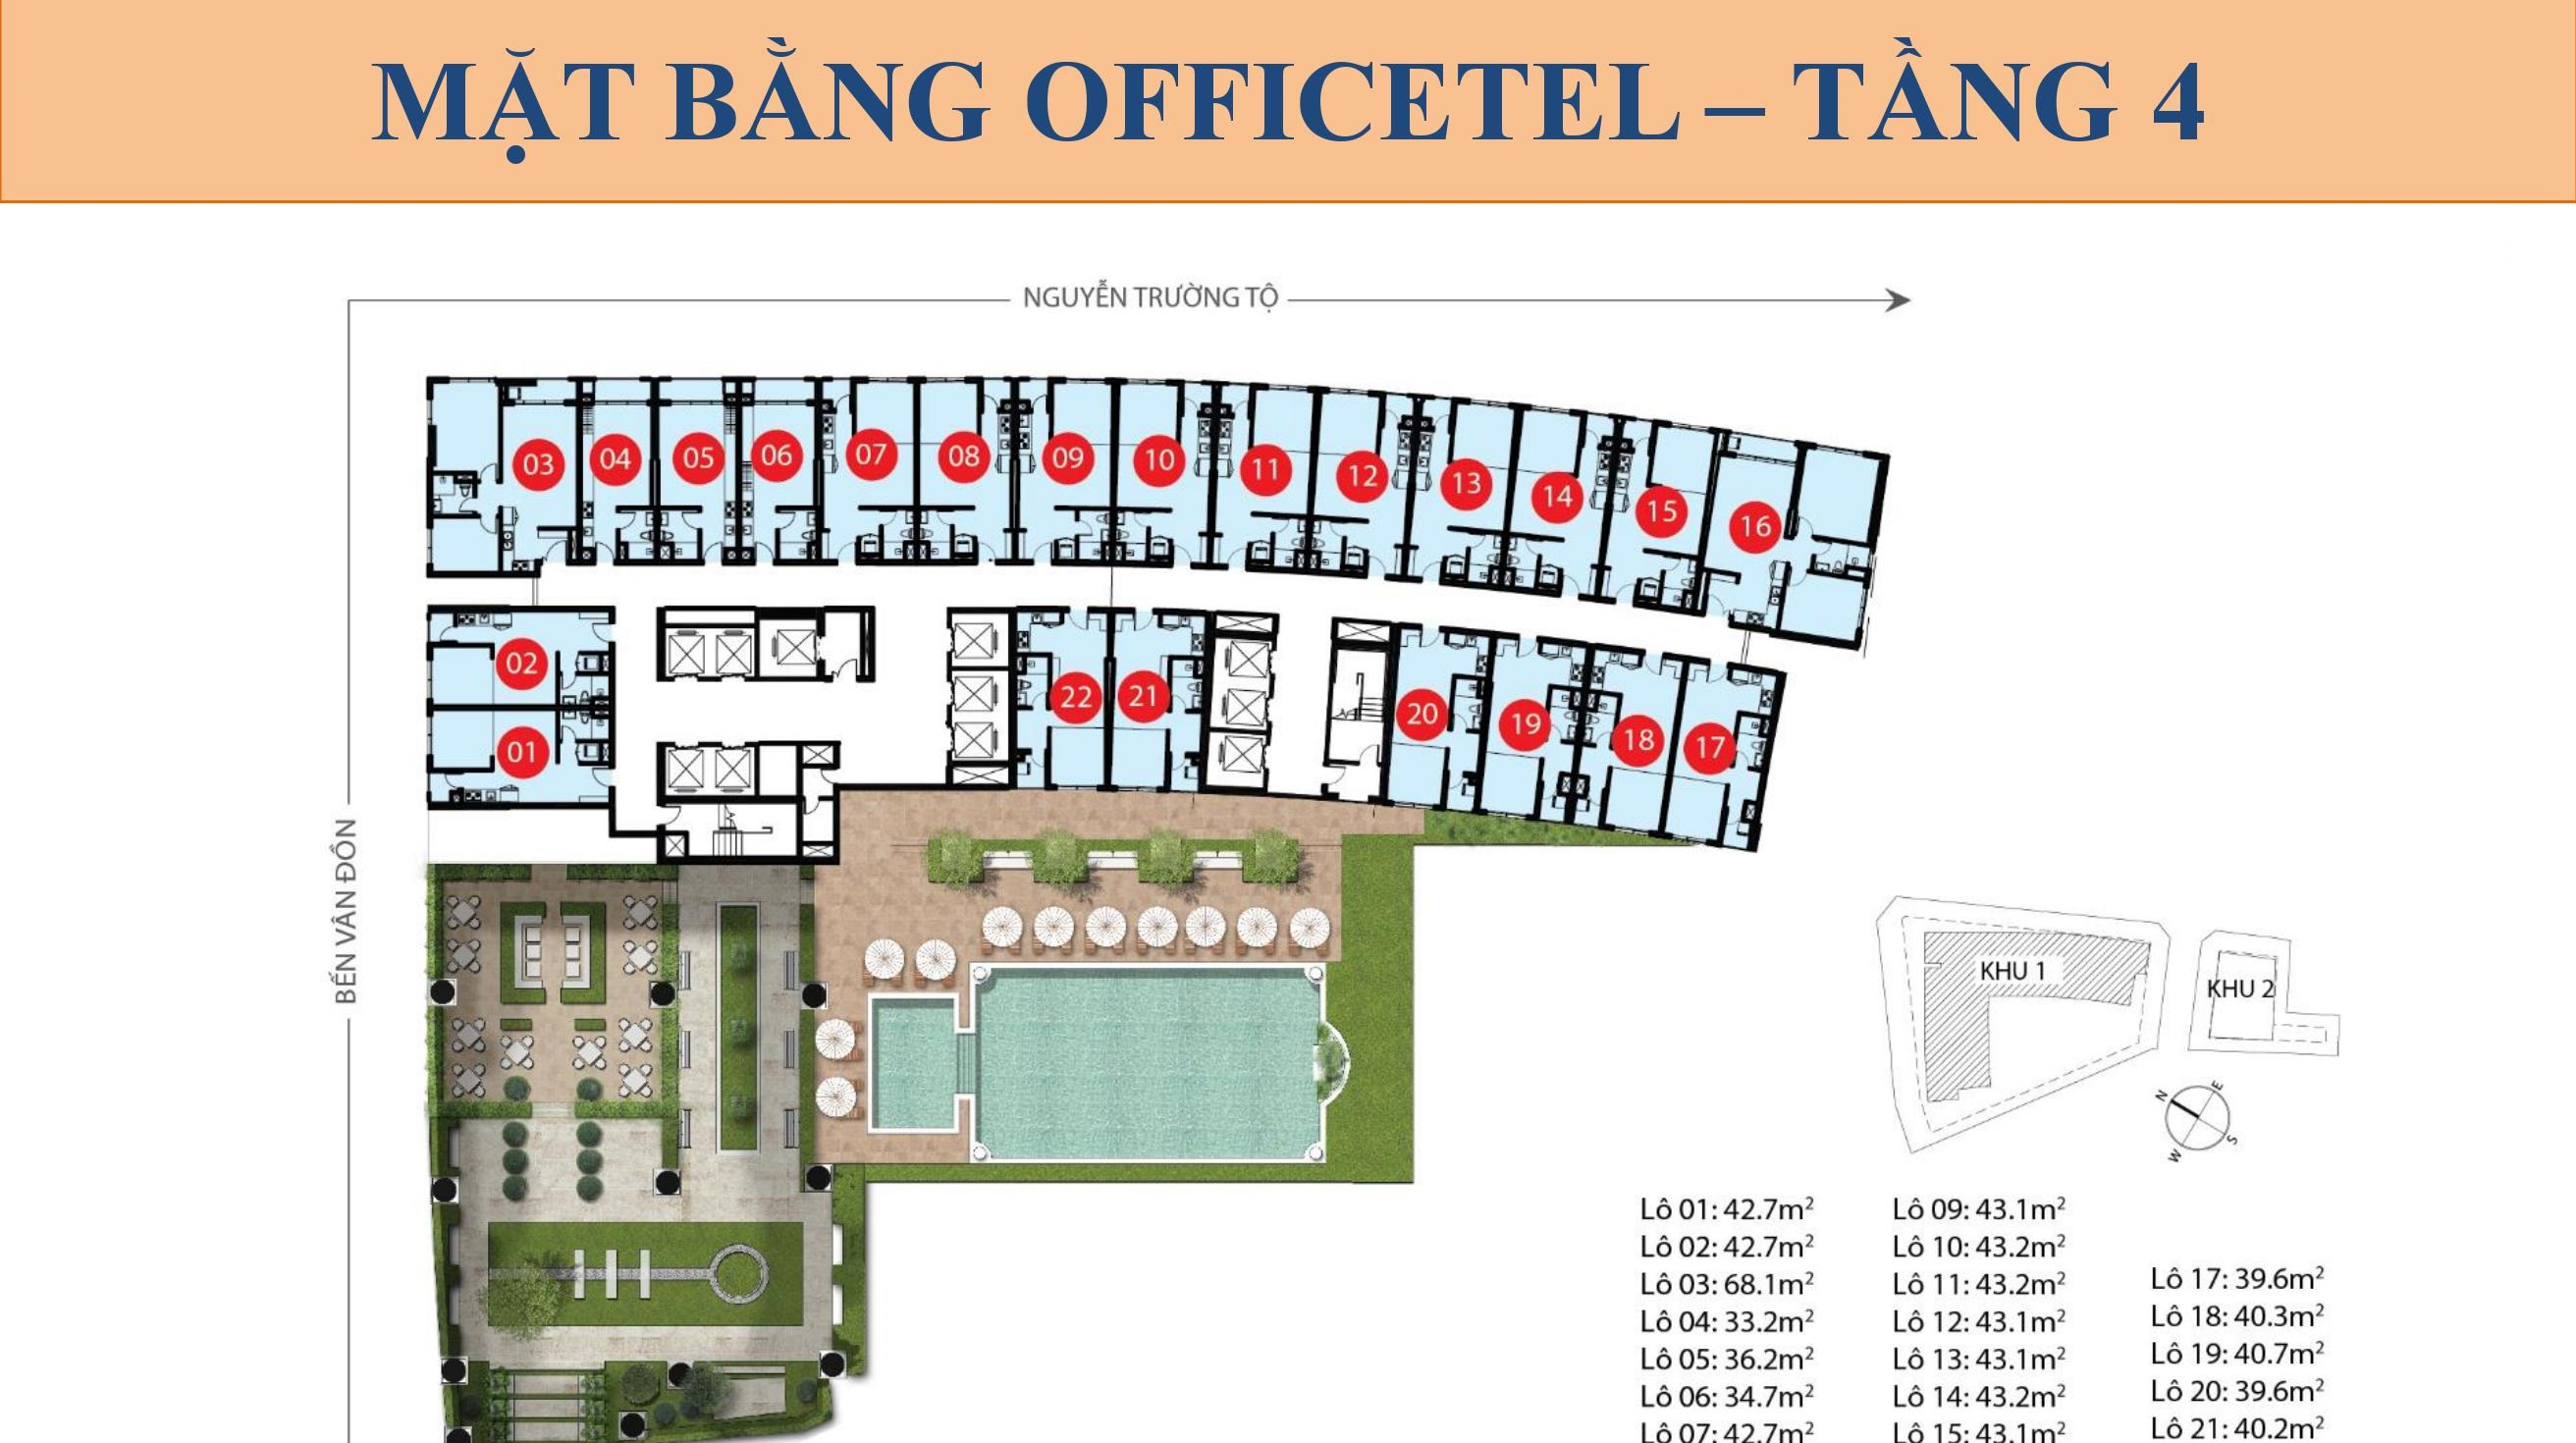 mat-bang-officetel-tang4-saigon-royal